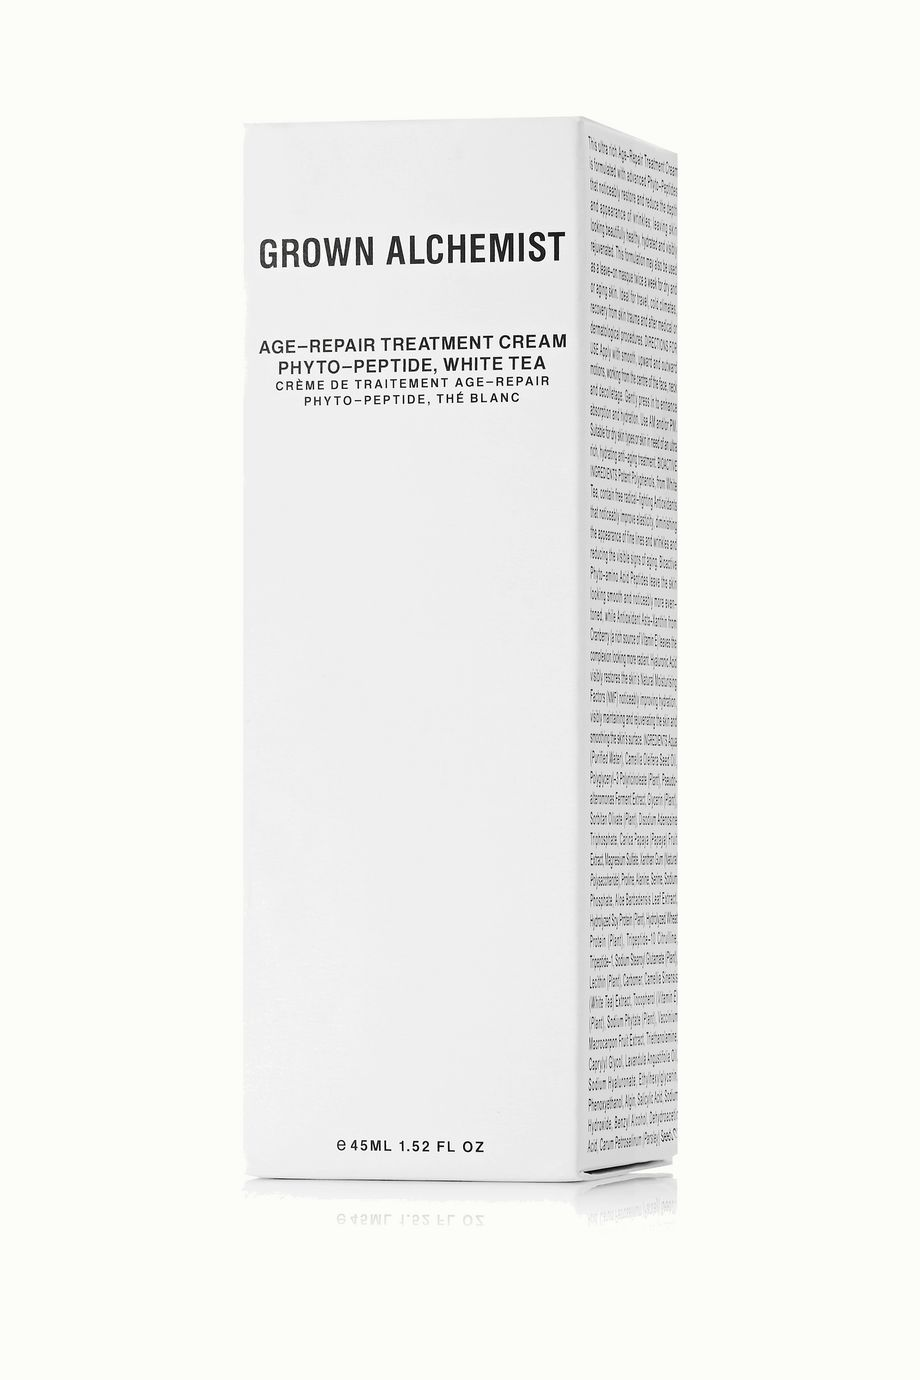 Grown Alchemist Age-Repair Treatment Cream, 45ml